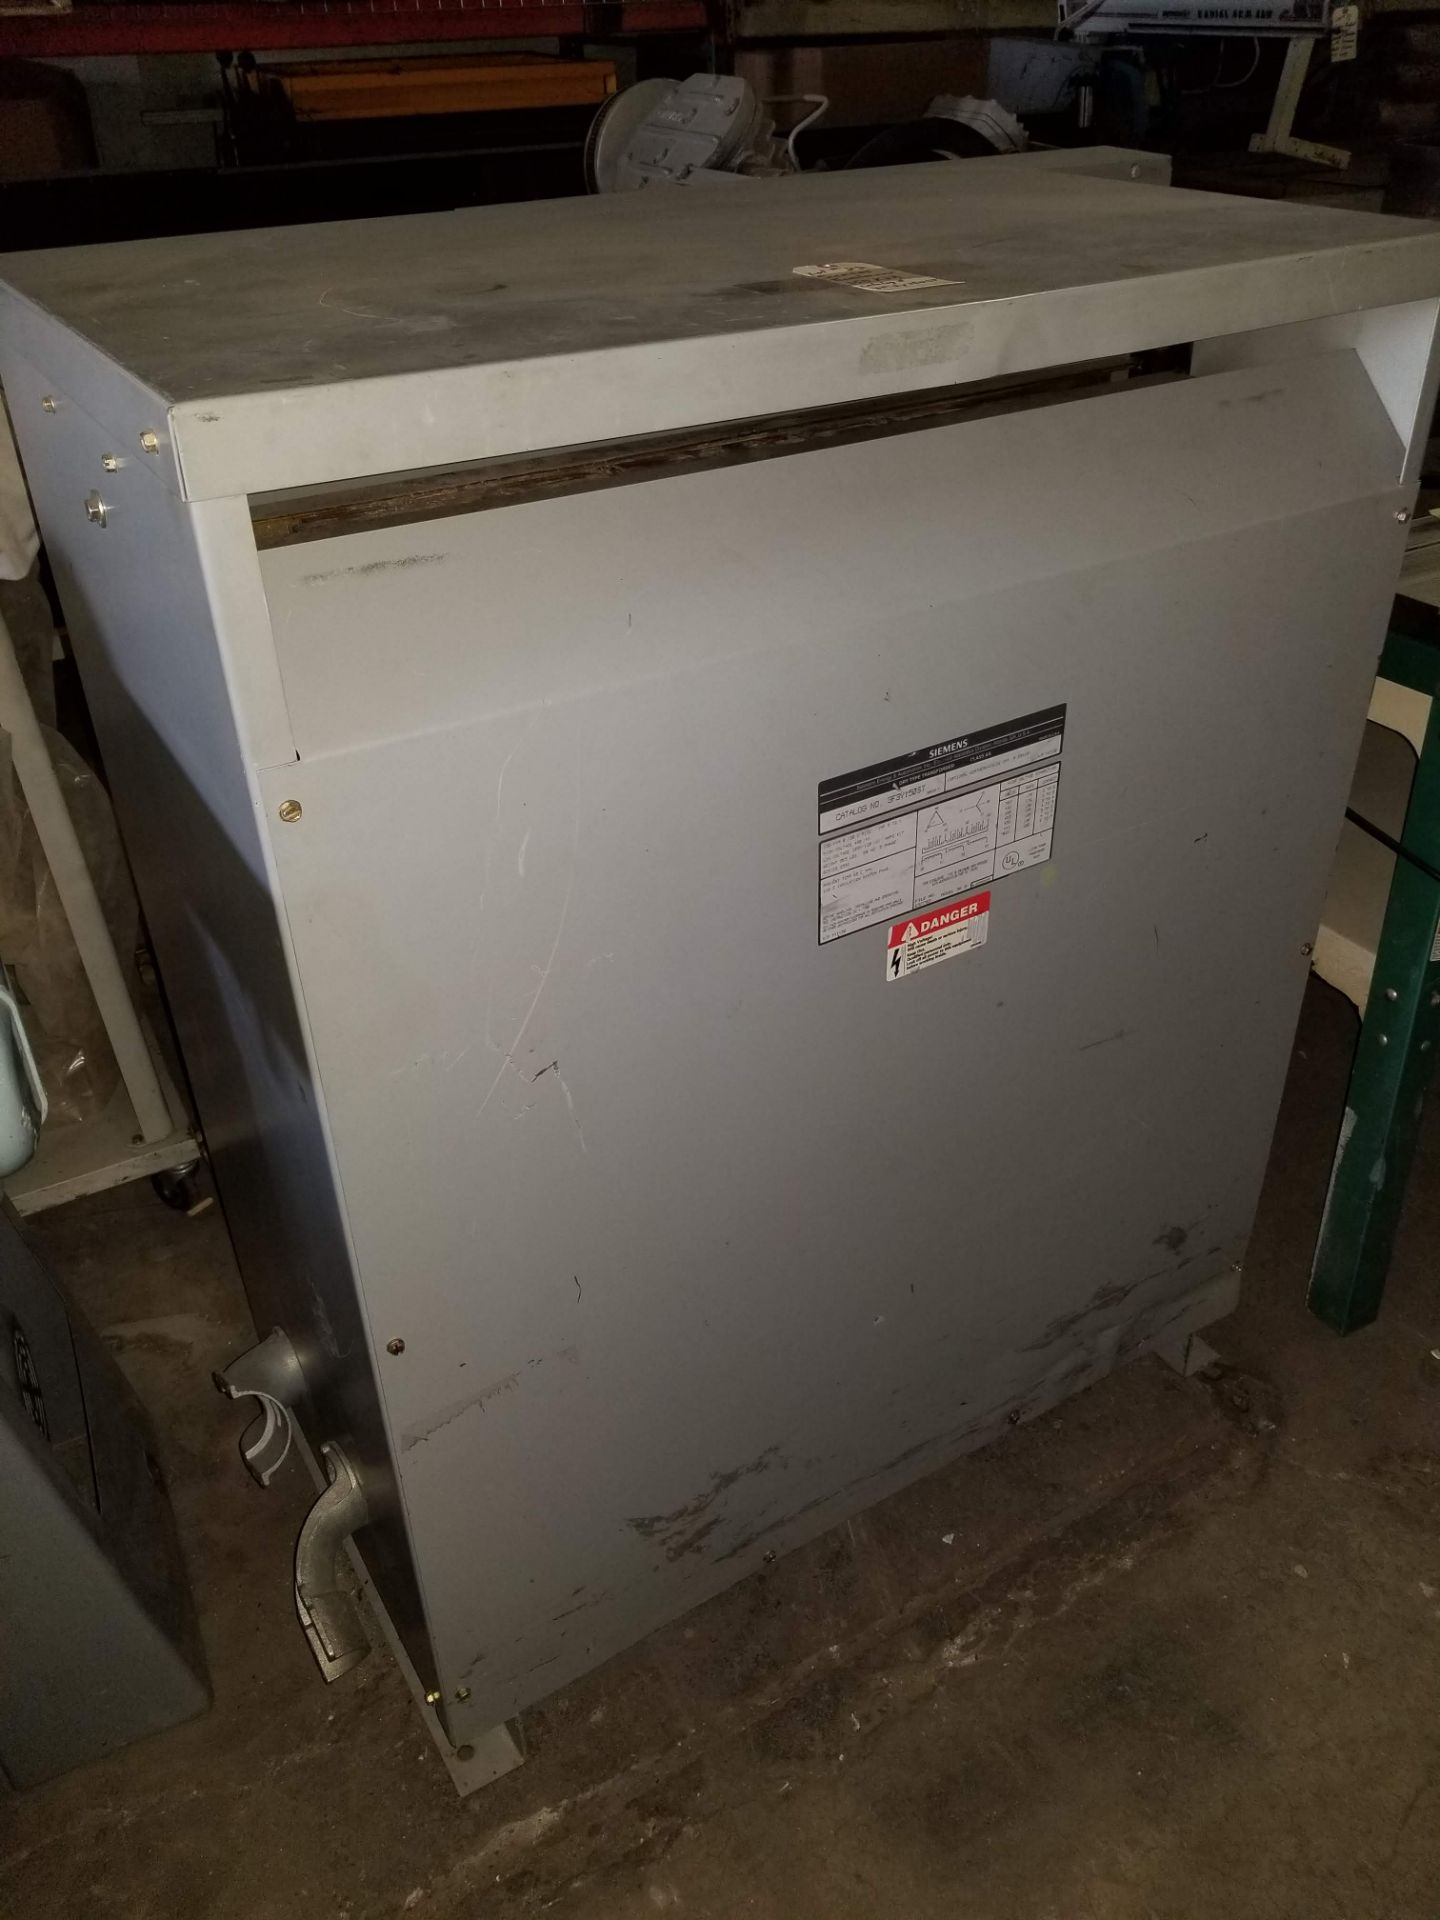 Lot 22 - Siemens Dry Type Transformer 150 KVA, Catalog 3F3Y150ST, Primary voltage (480V), secondary